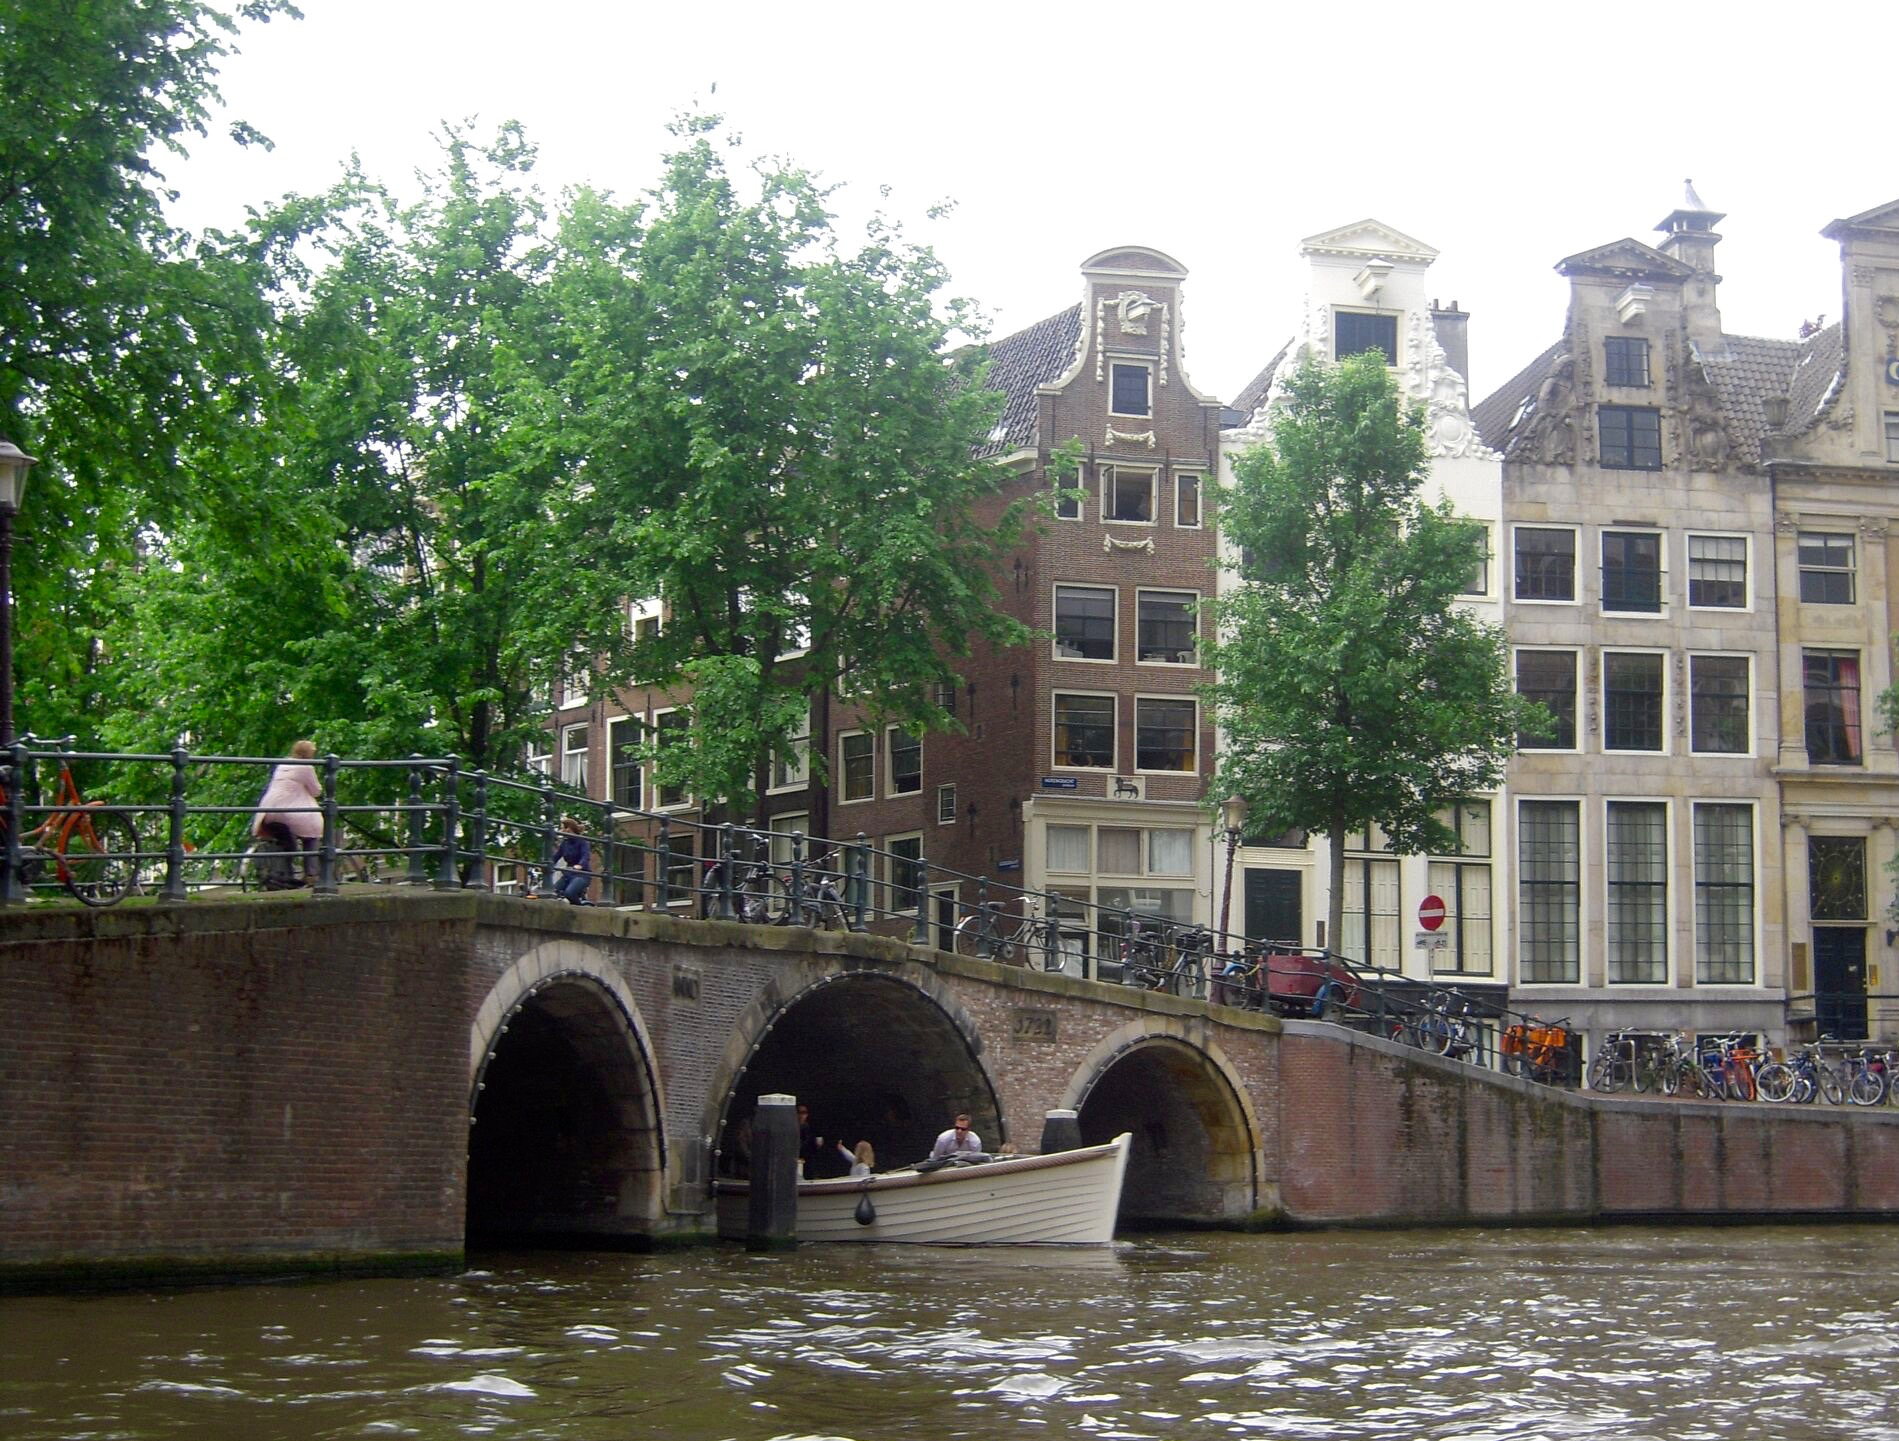 A canal in modern Amsterdam